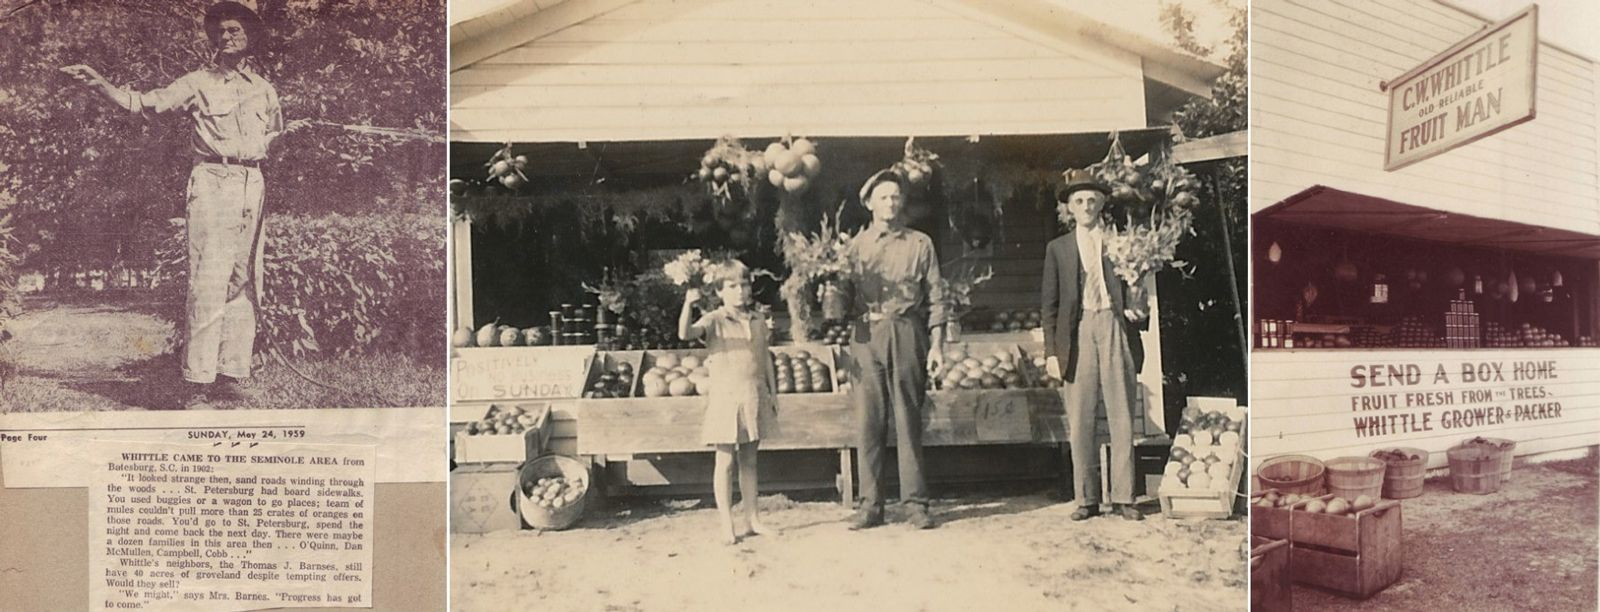 Claude Whittle and the fruit stand in front of the Whittle house in 1959